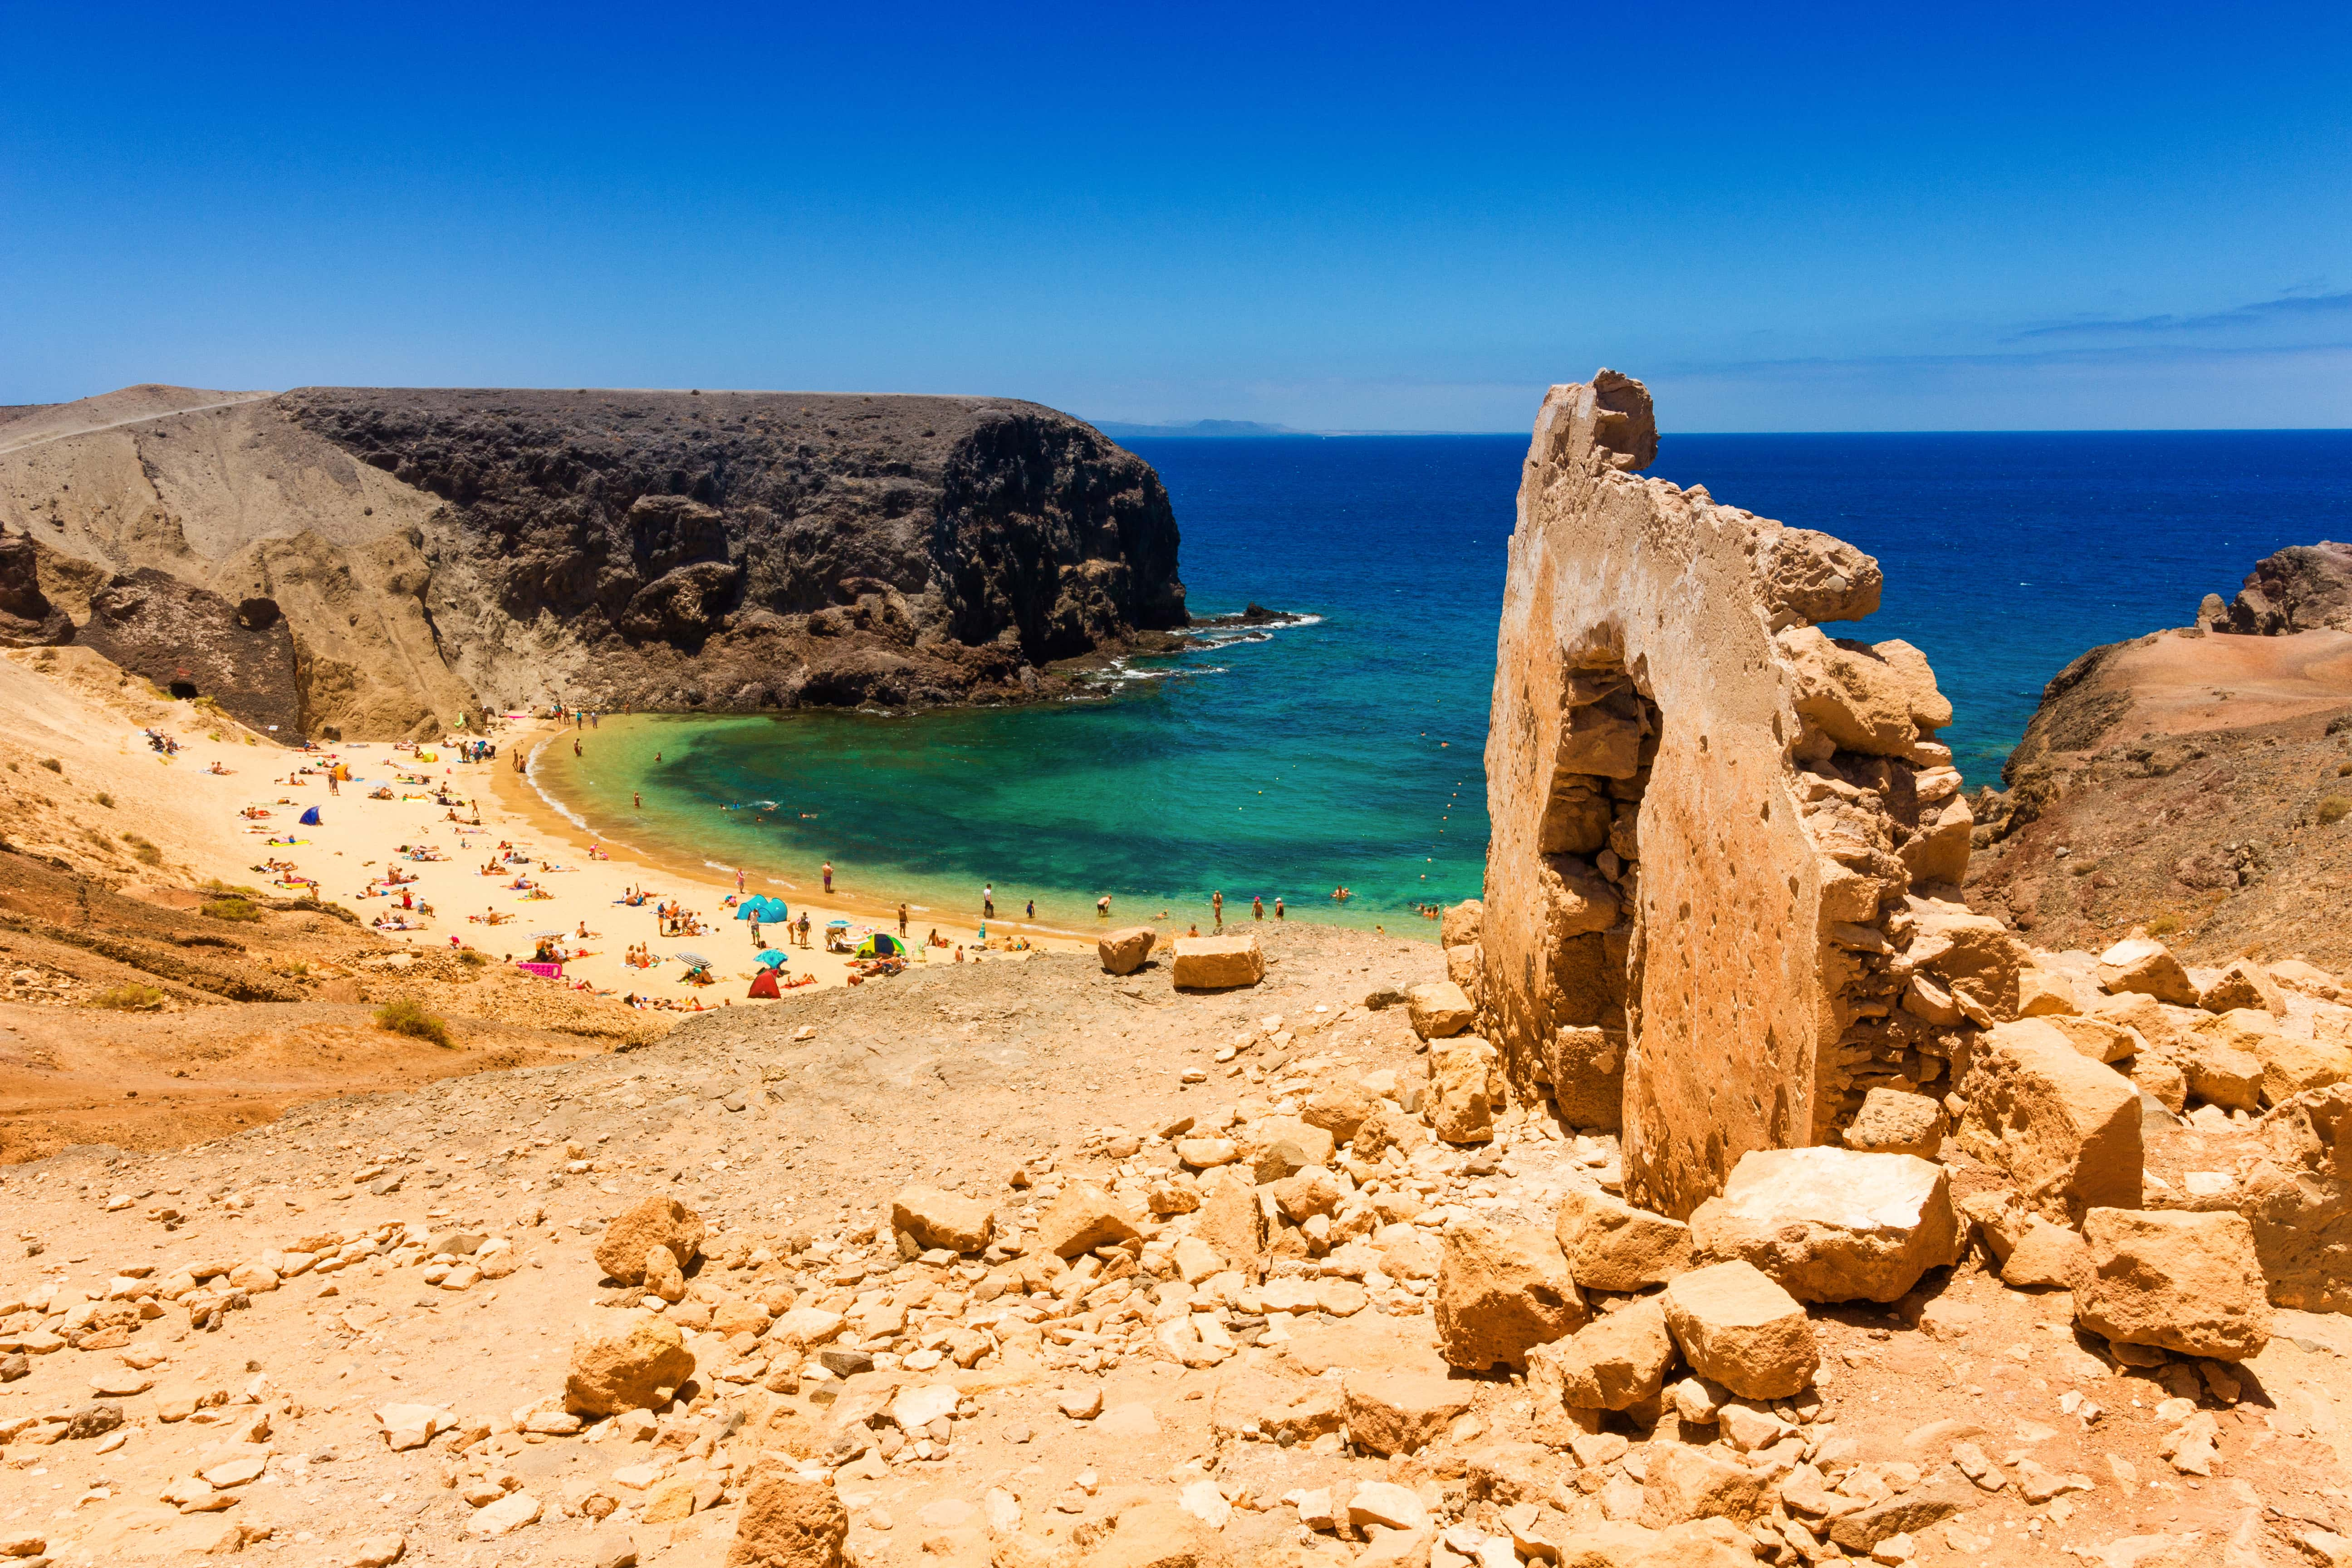 The best beaches on Lanzarote for family fun in the sun